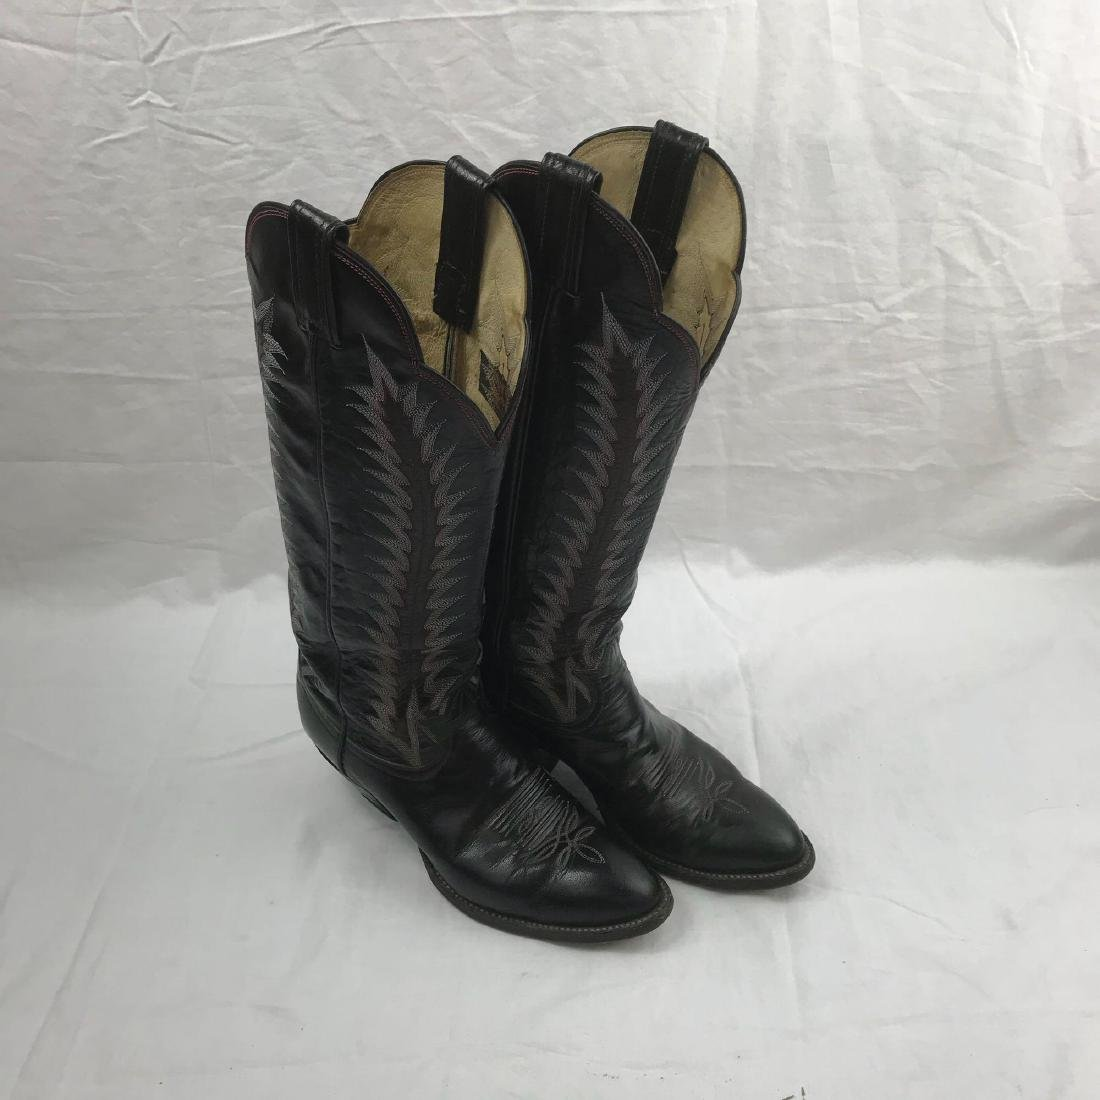 Tony Lama size 8 Cowgirl Boots - 5